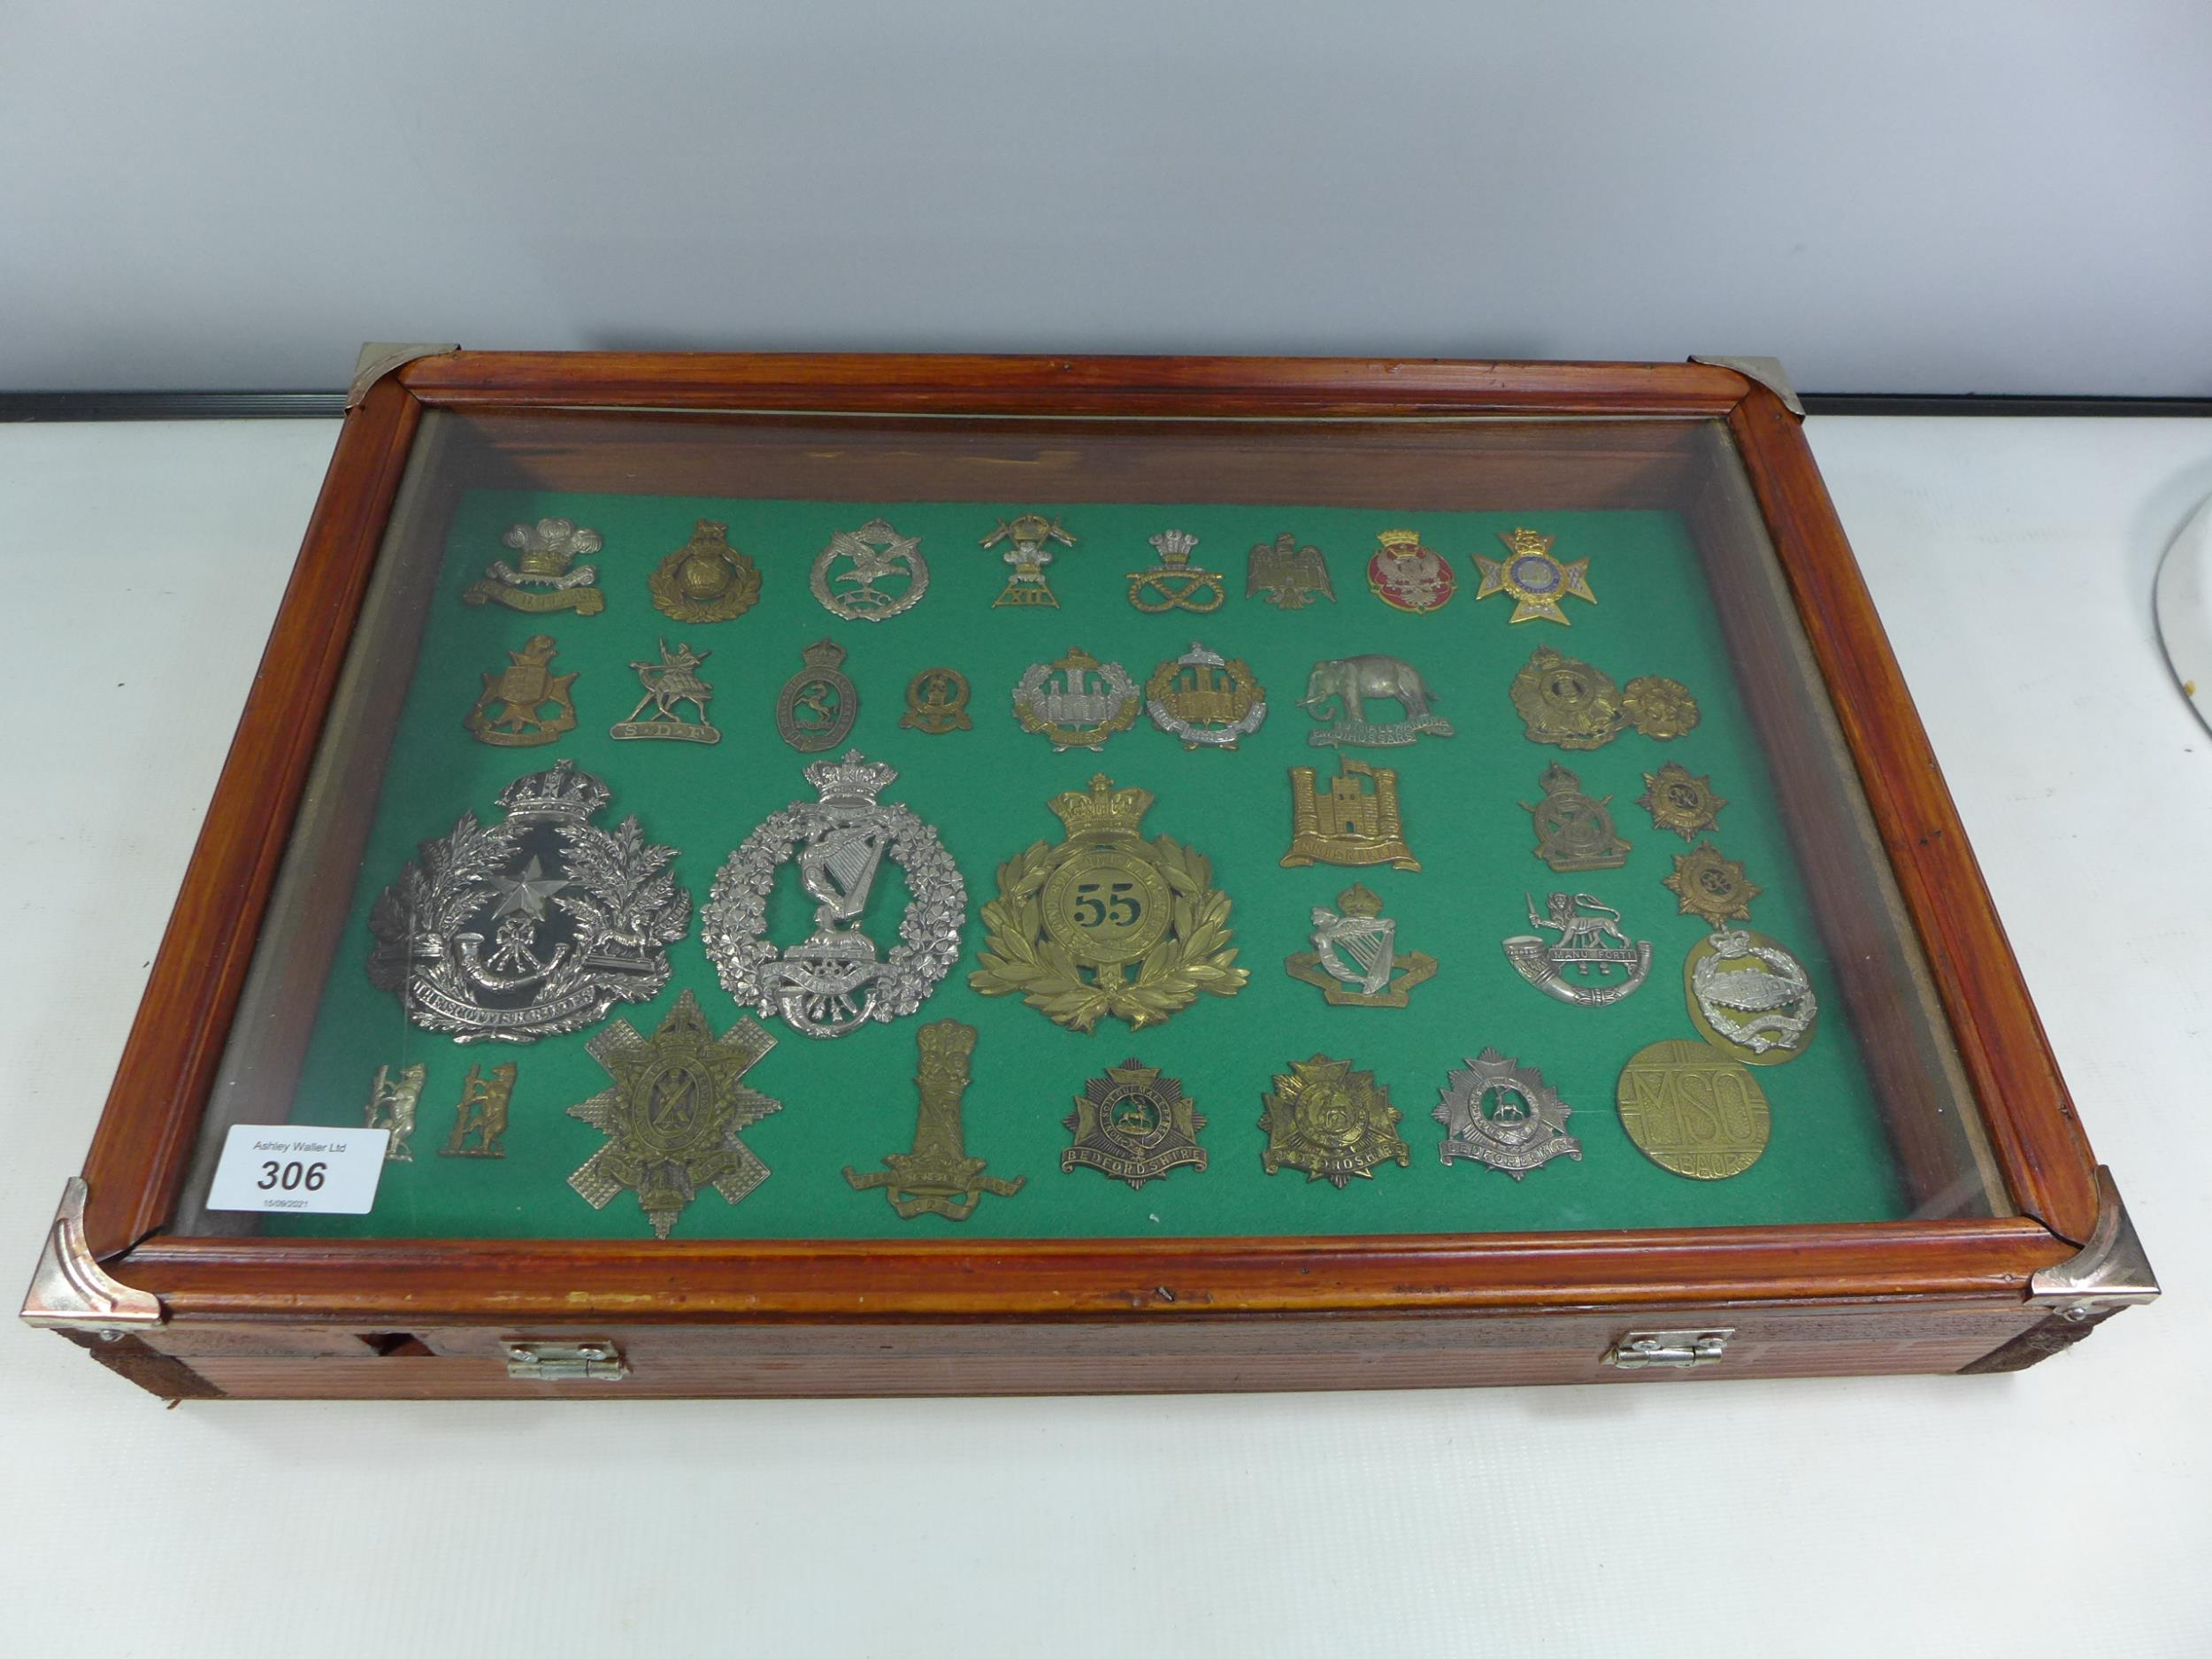 A GLAZED DISPLAY CASE CONTAINING THIRTY FIVE BRITISH MILITARY BADGES, 33CM X 49CM - Image 6 of 6